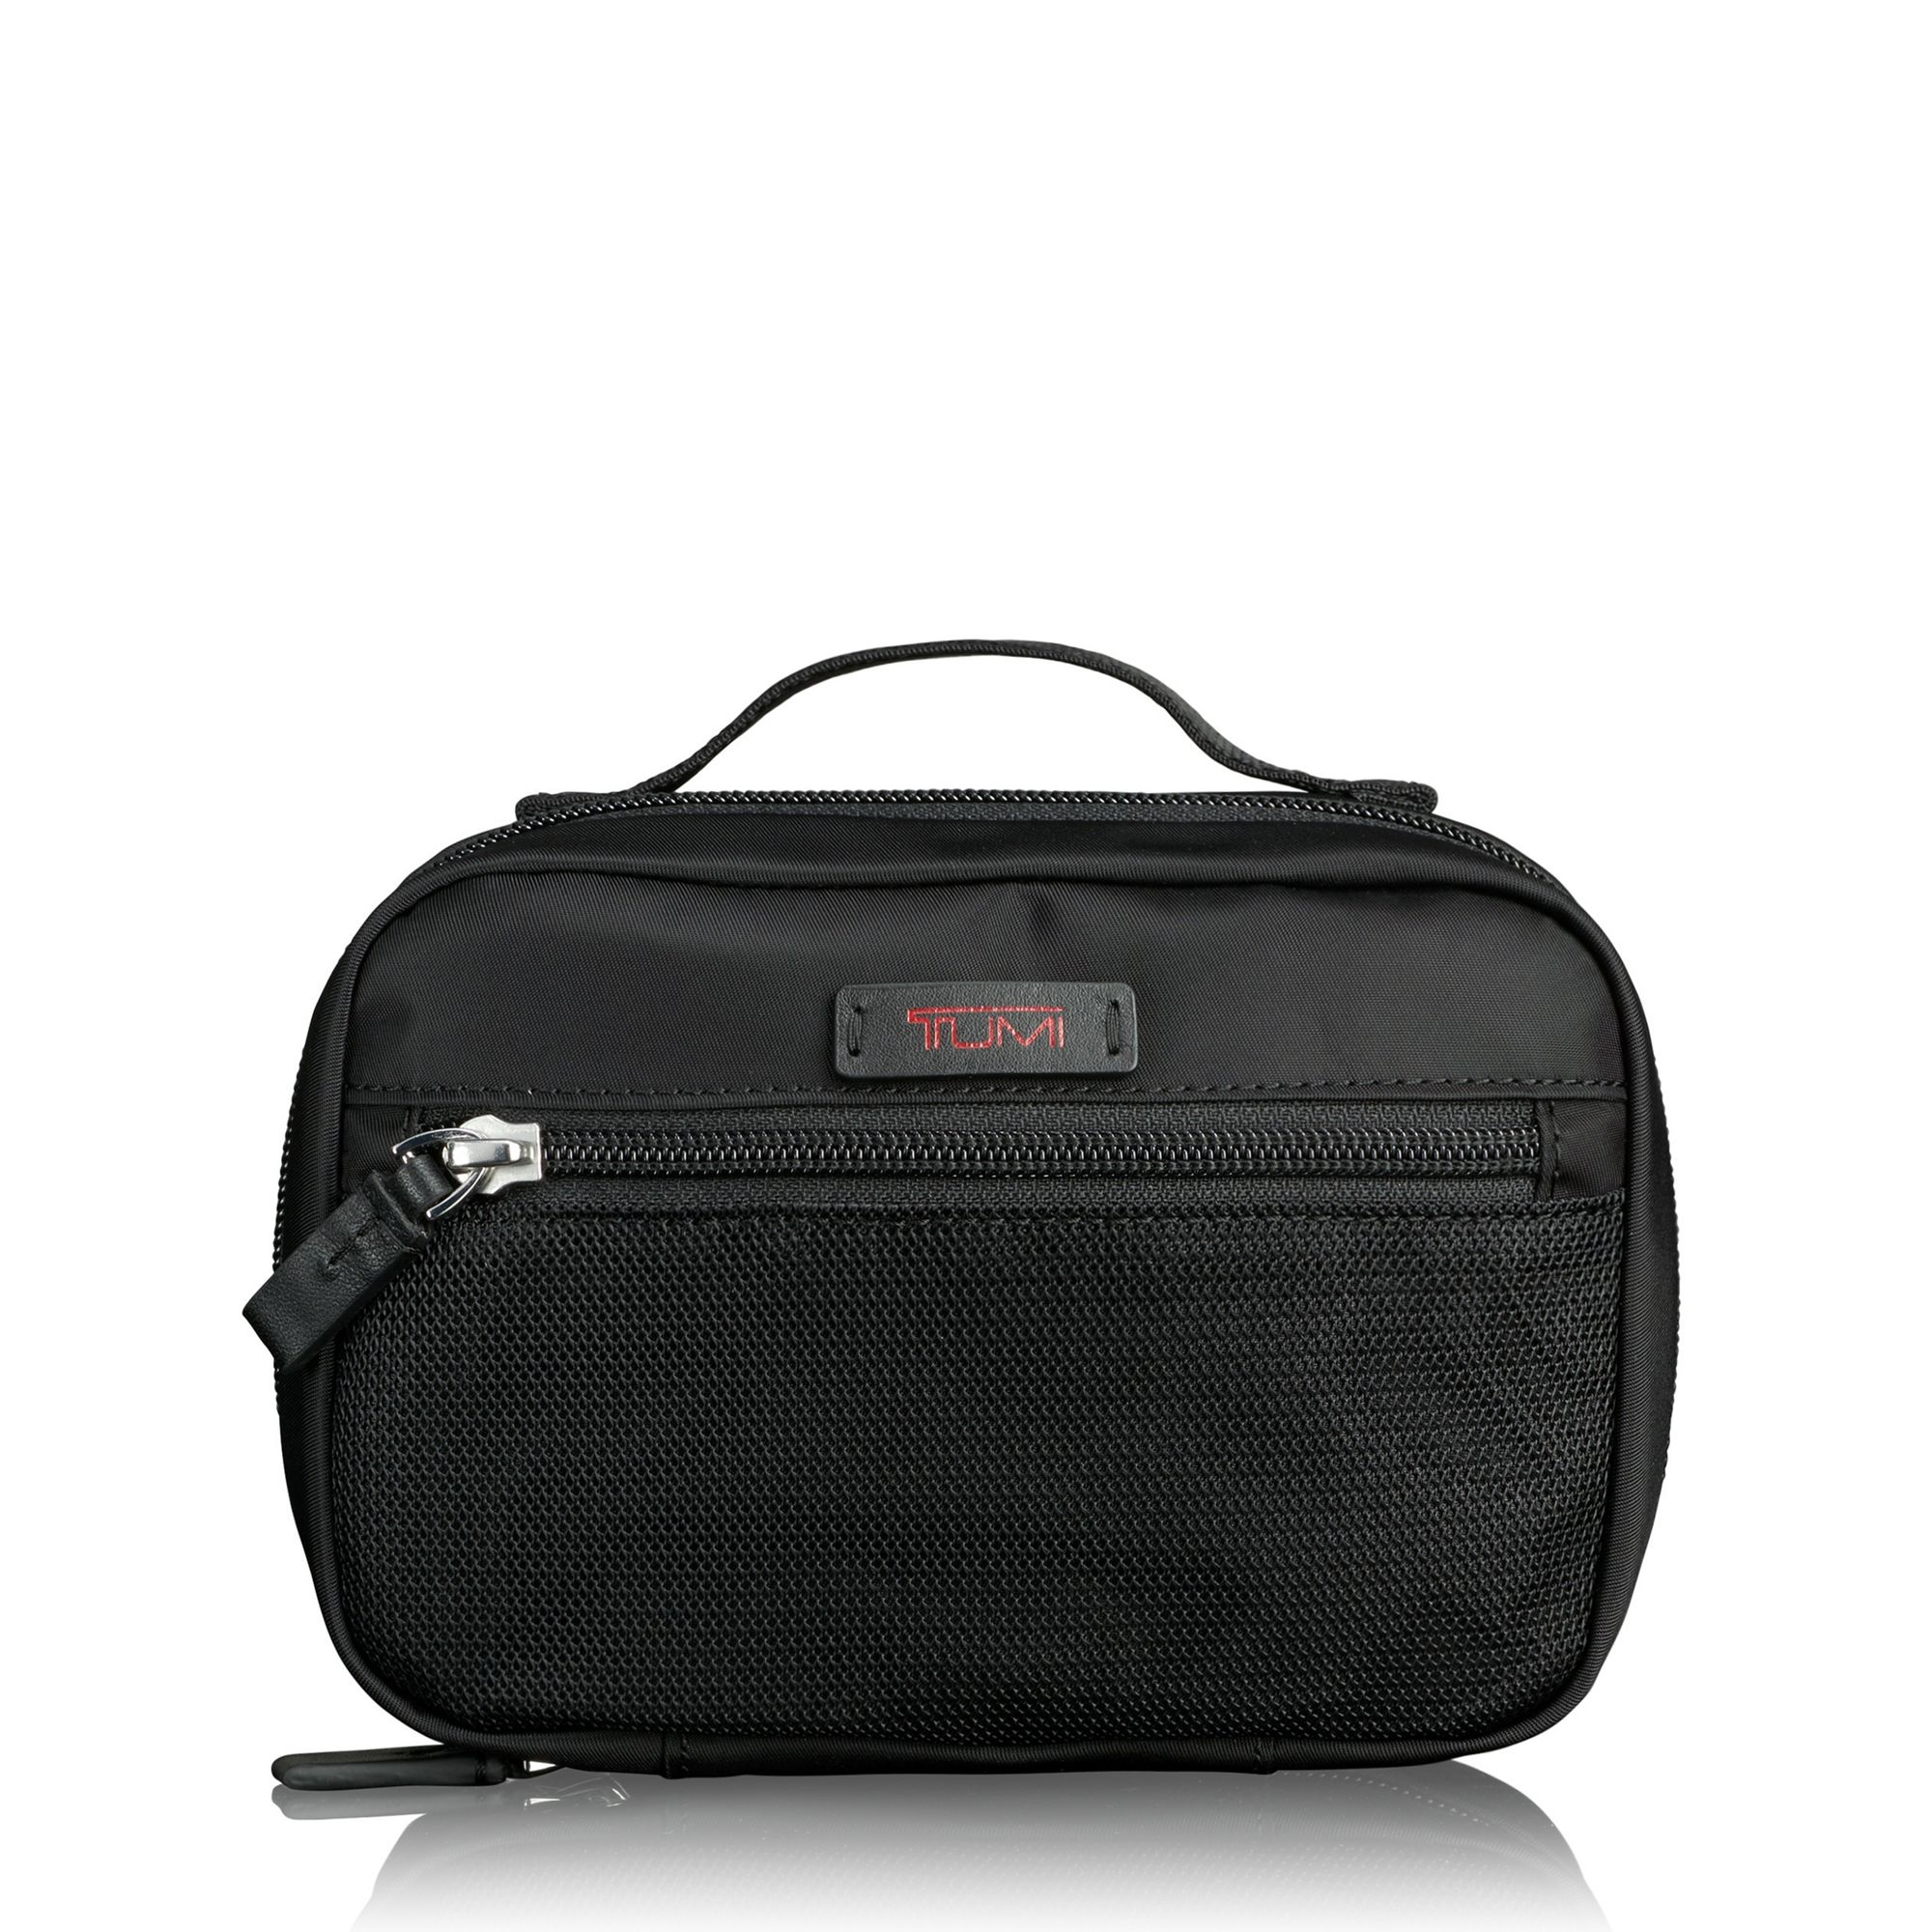 Tumi Small Accessories Pouch